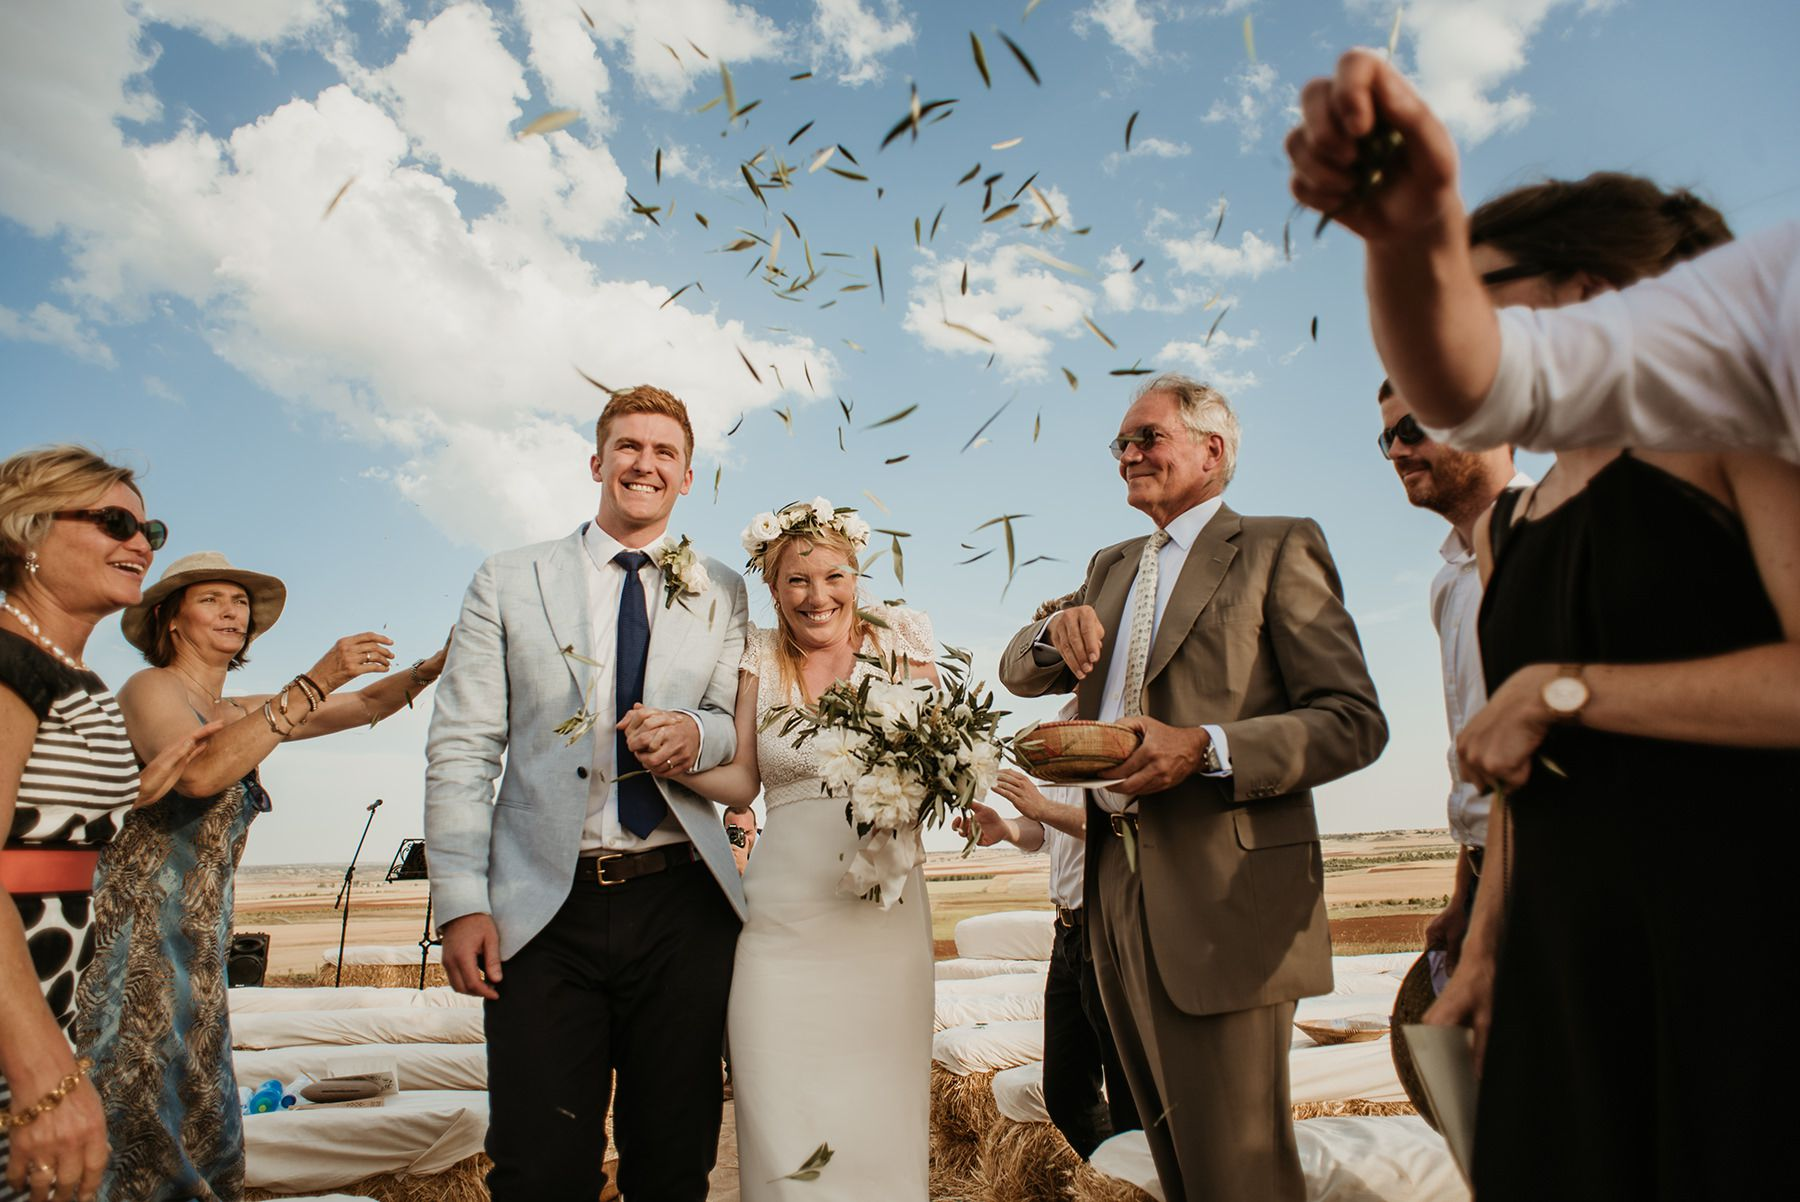 Tips to have a great wedding